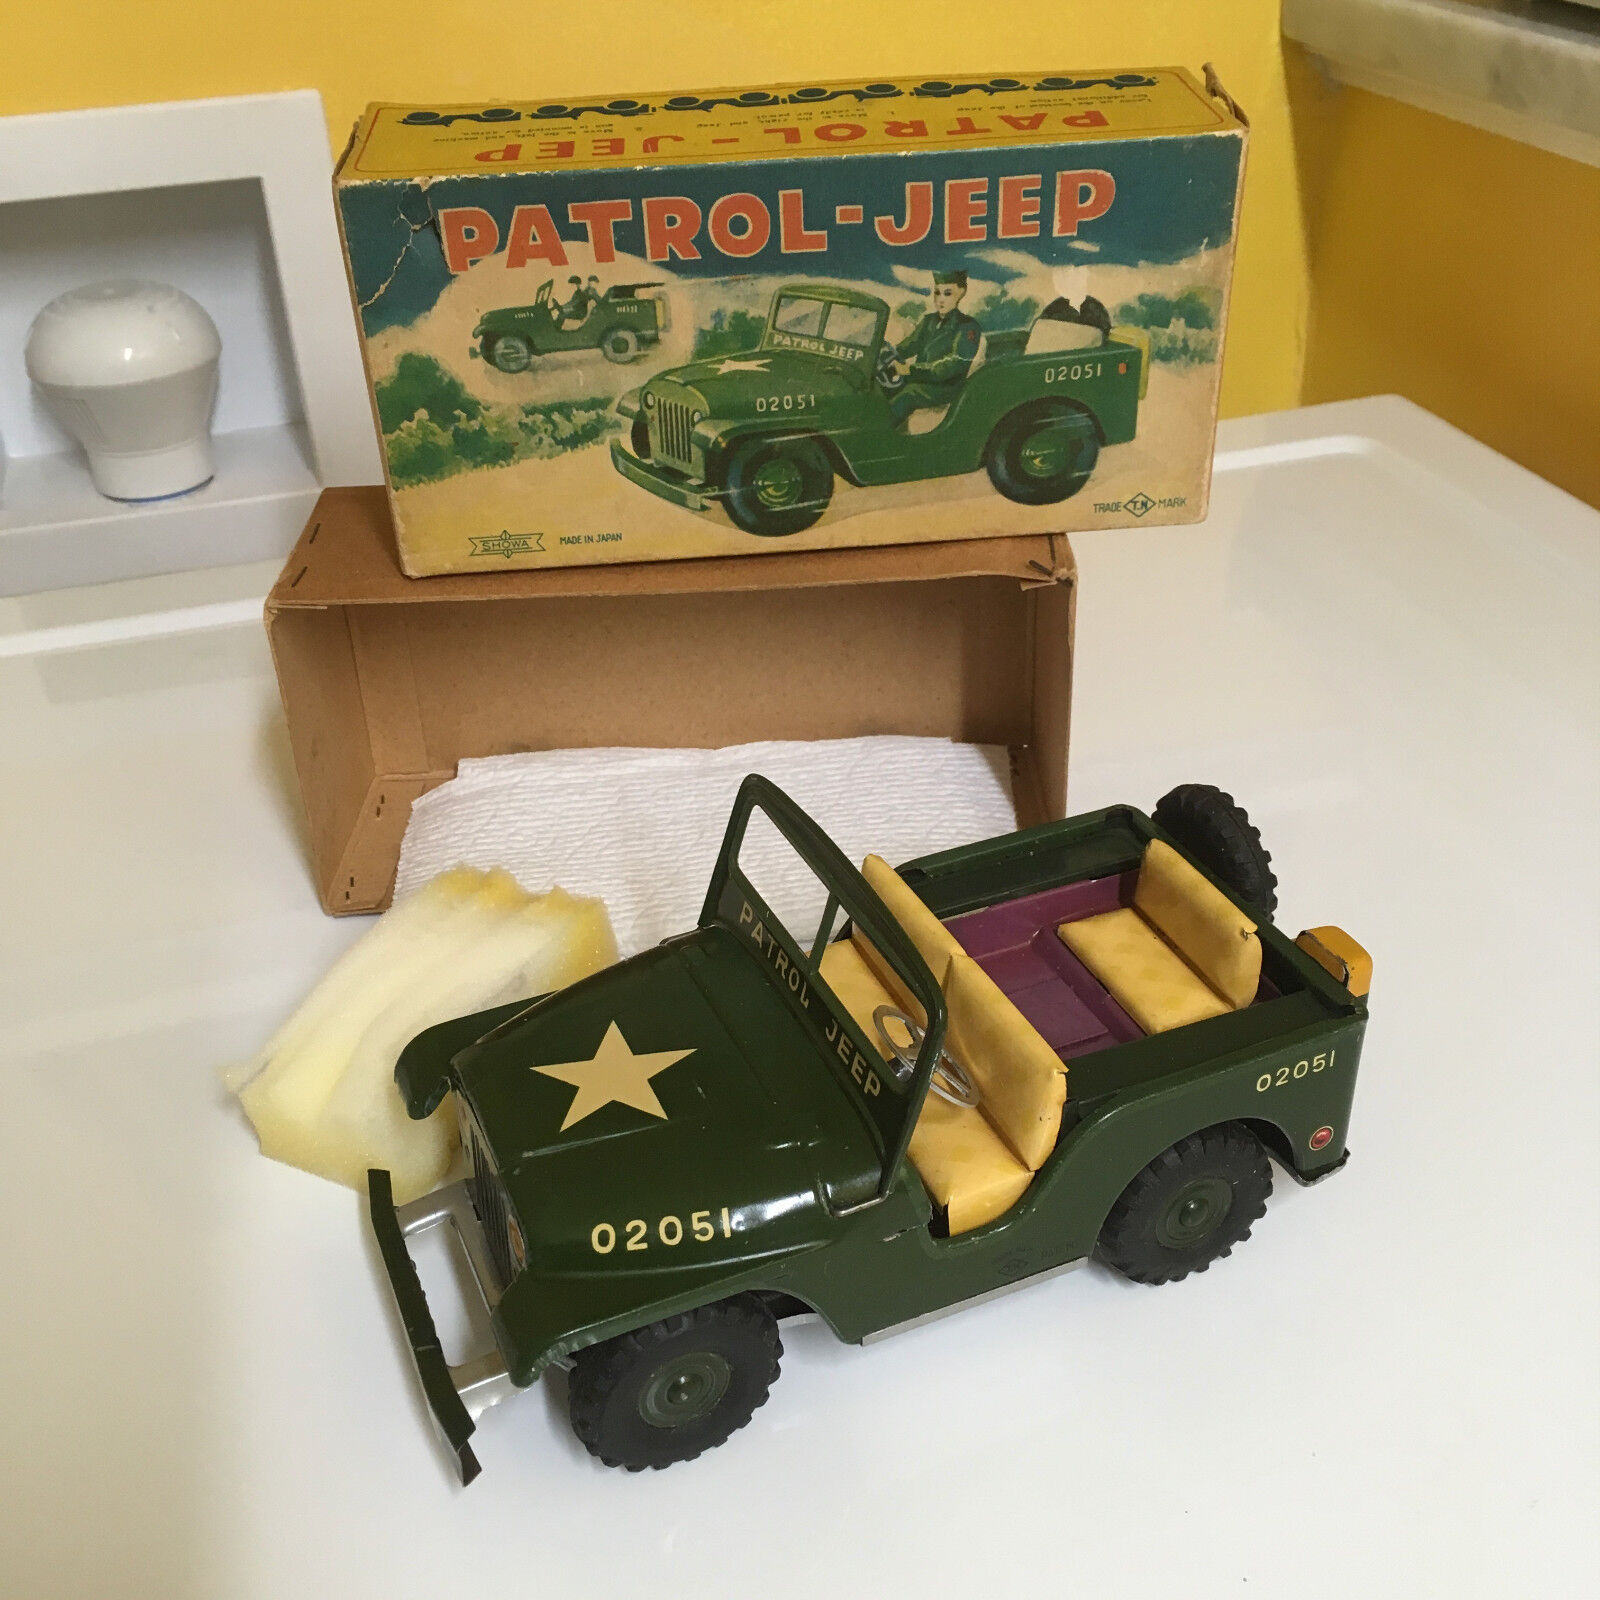 VINTAGE NOMURA FRICTION DRIVE PATROL-JEEP WORKING W ORIGINAL BOX   MADE BY SHOWA